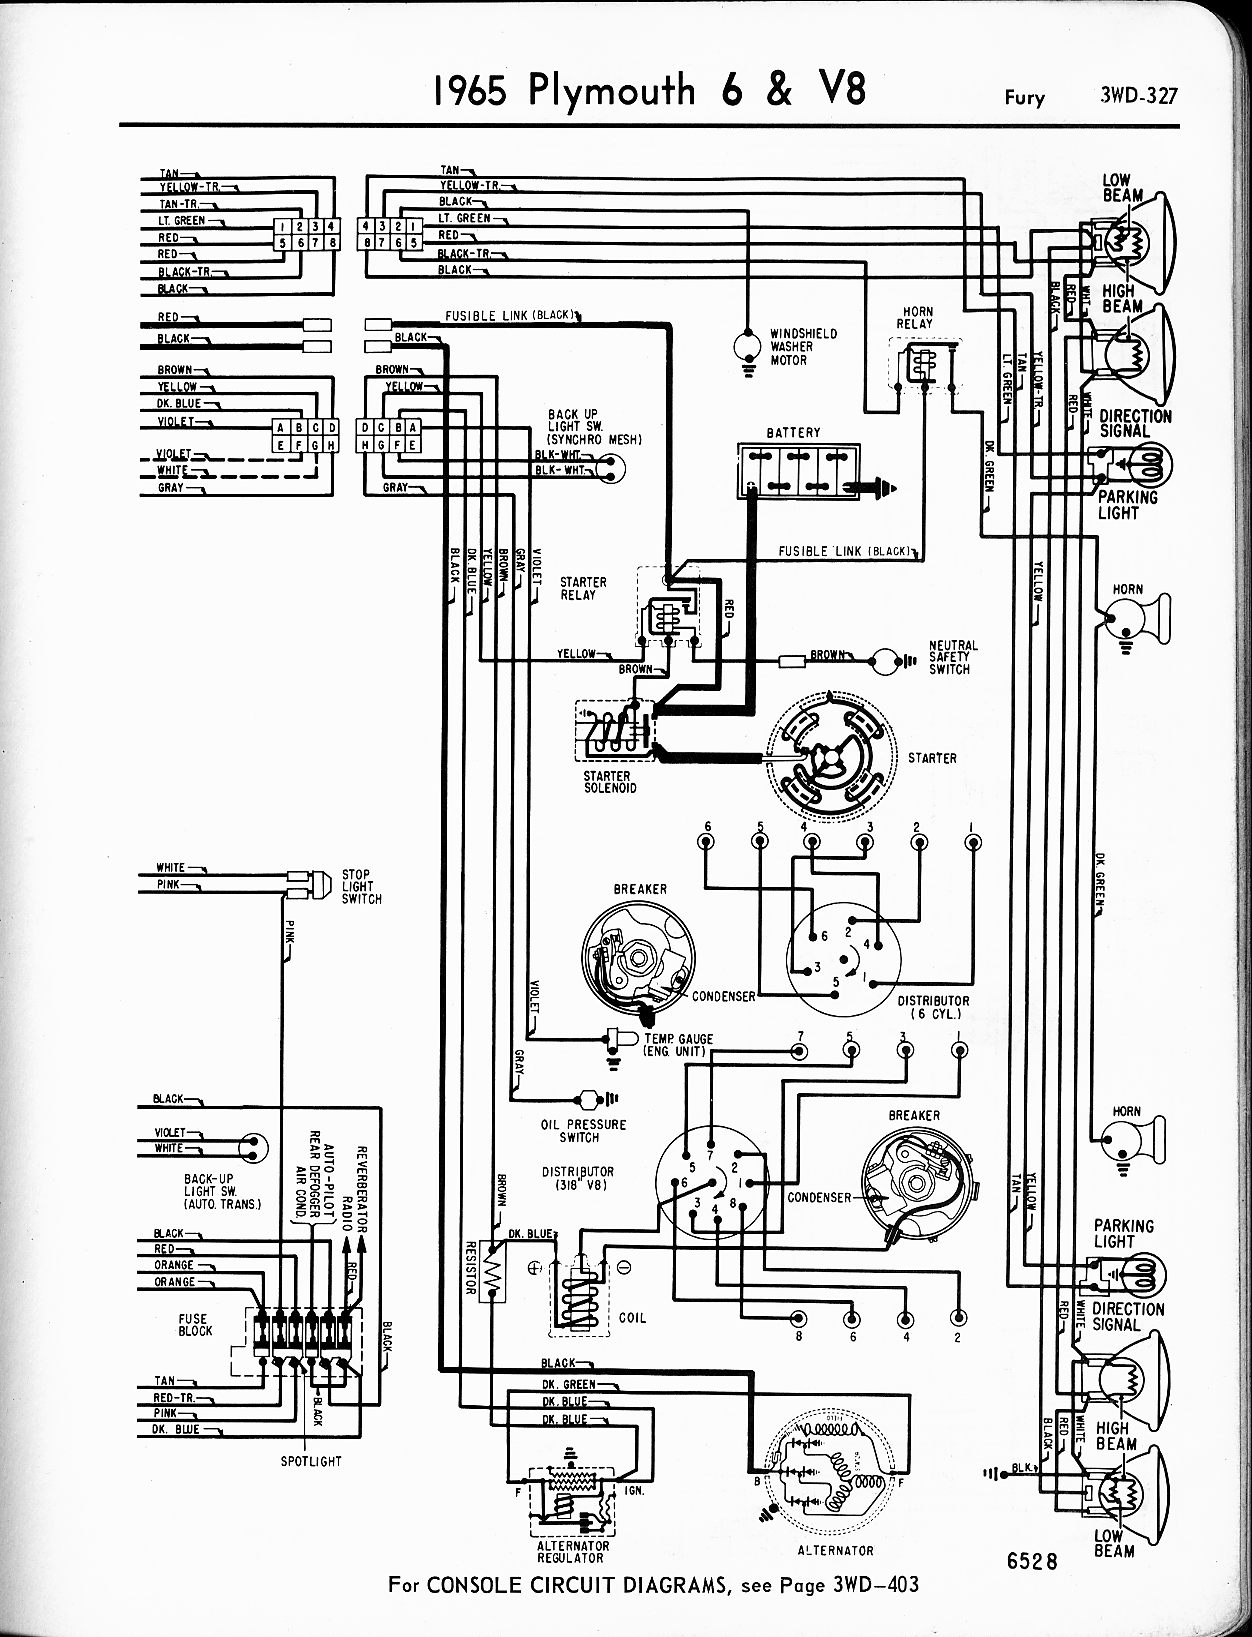 1970 Sport Satellite Wiring Diagram Start Building A Direct Tv Diagrams 1956 1965 Plymouth The Old Car Manual Project Rh Oldcarmanualproject Com